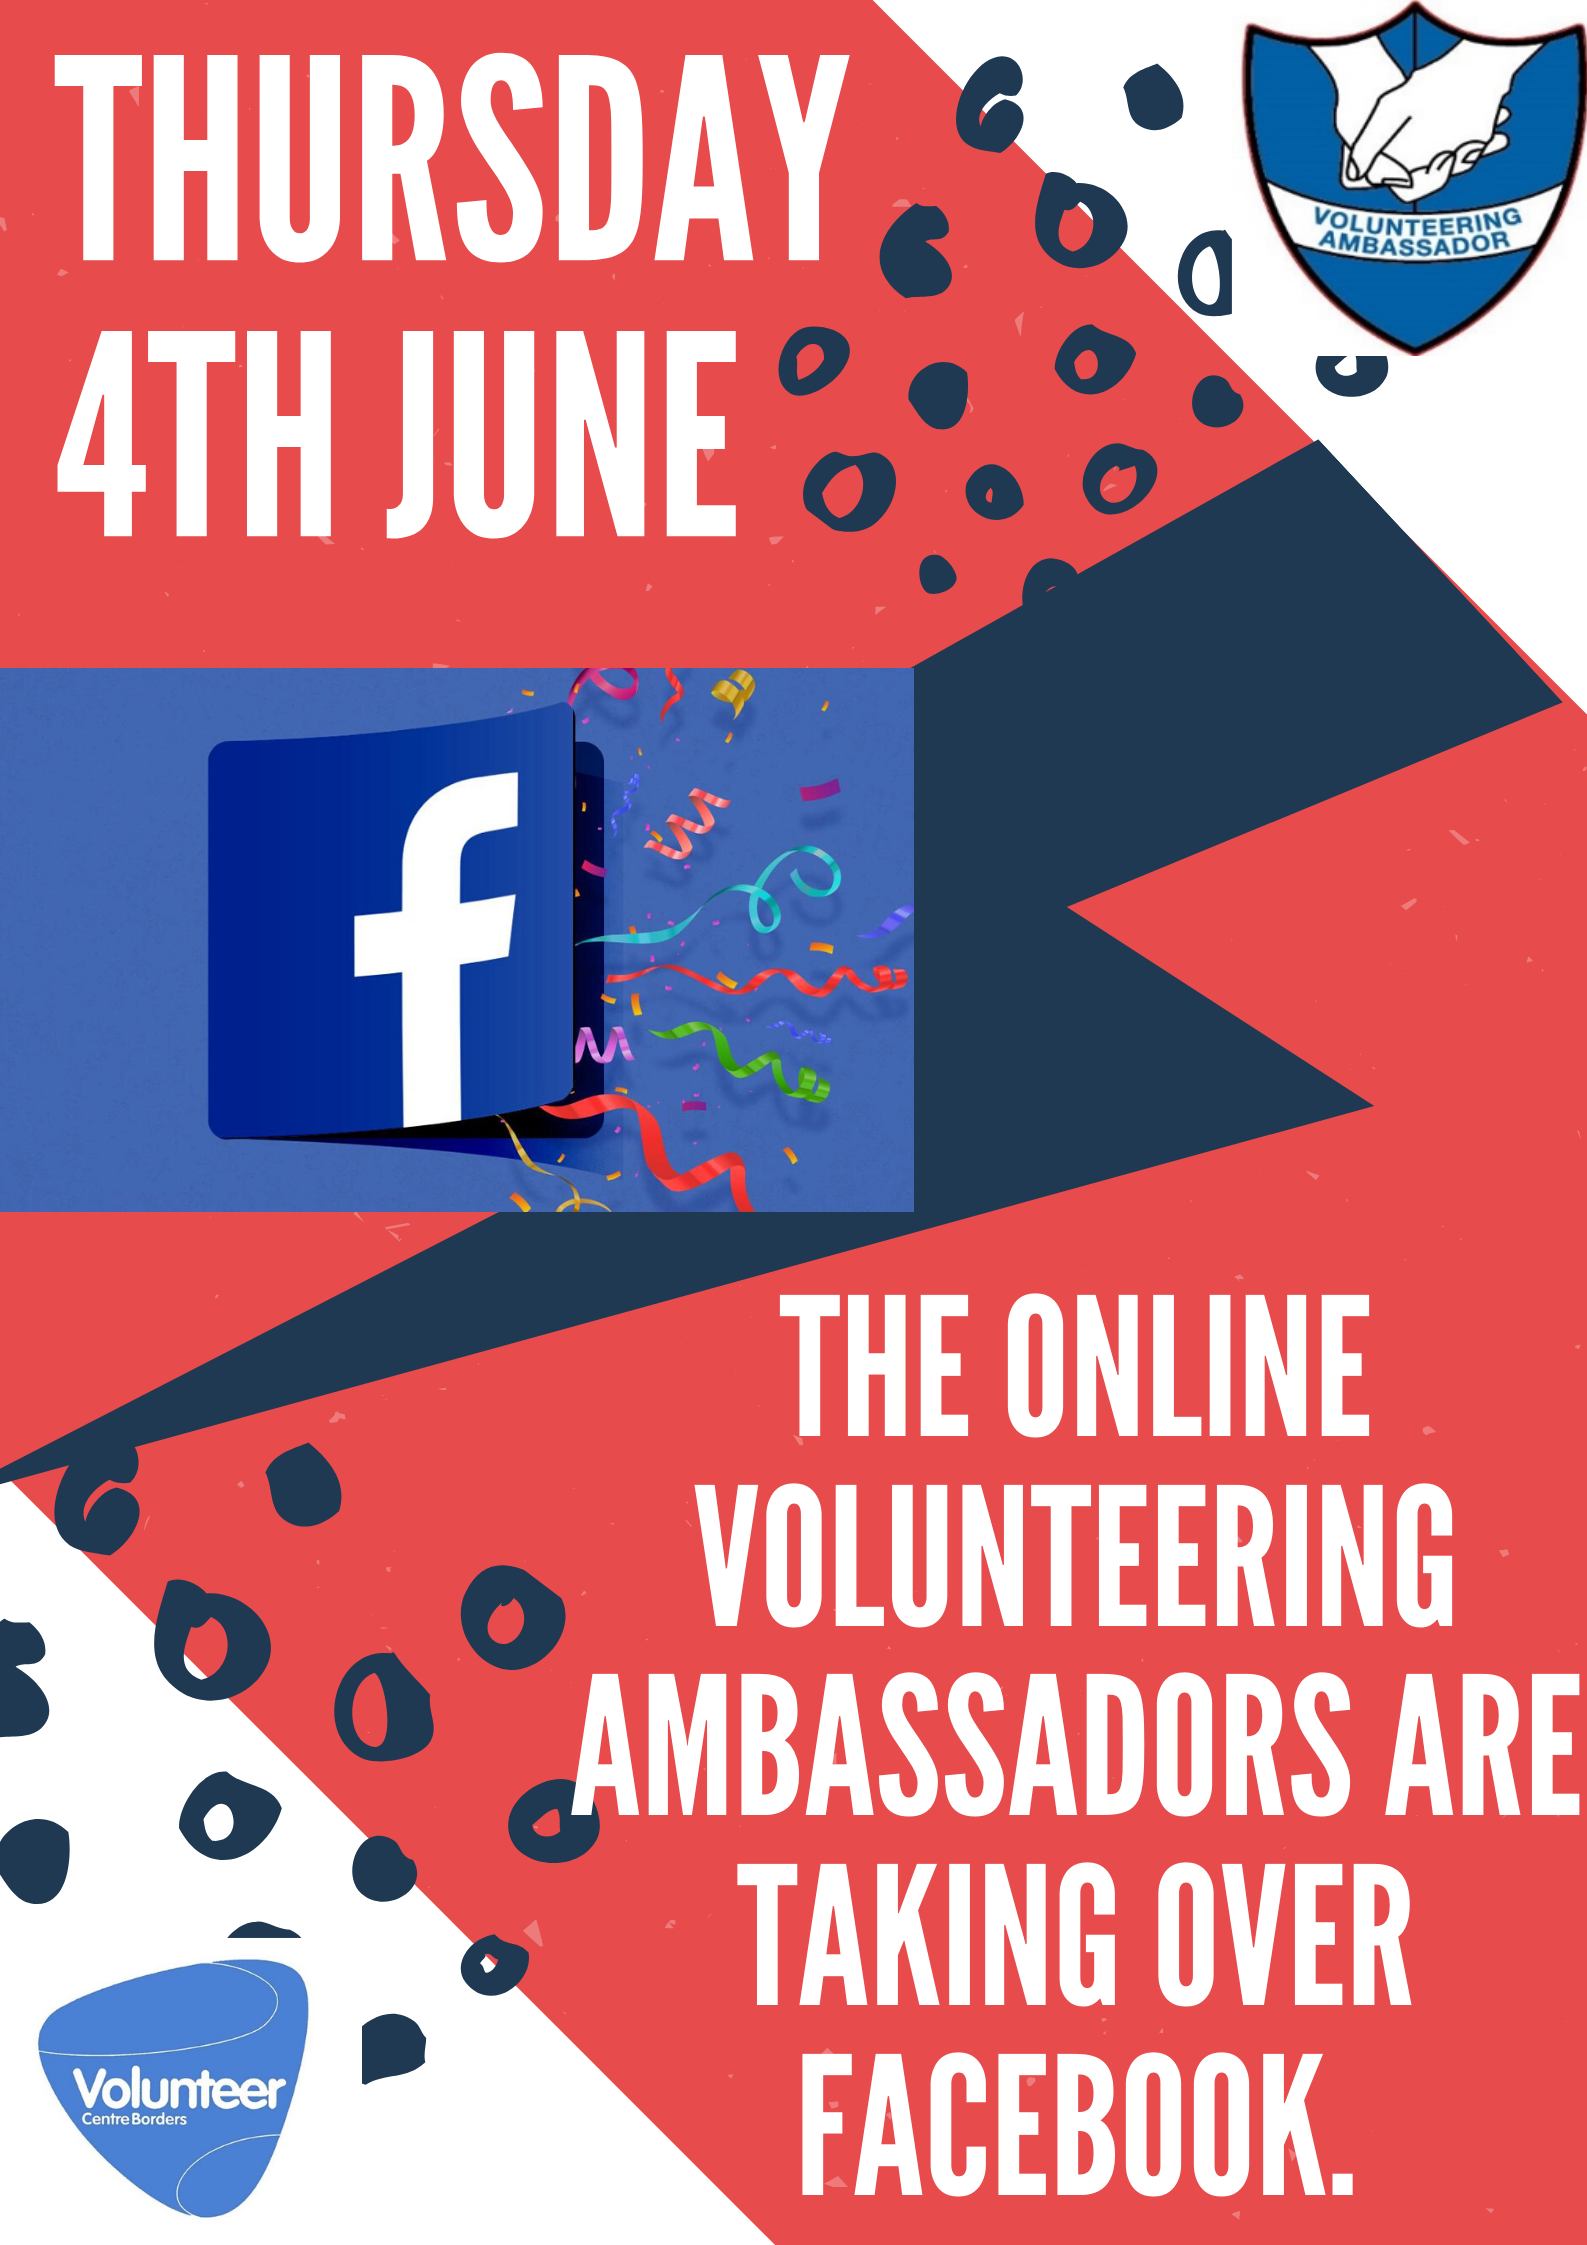 Volunteering Ambassador facebook takeover